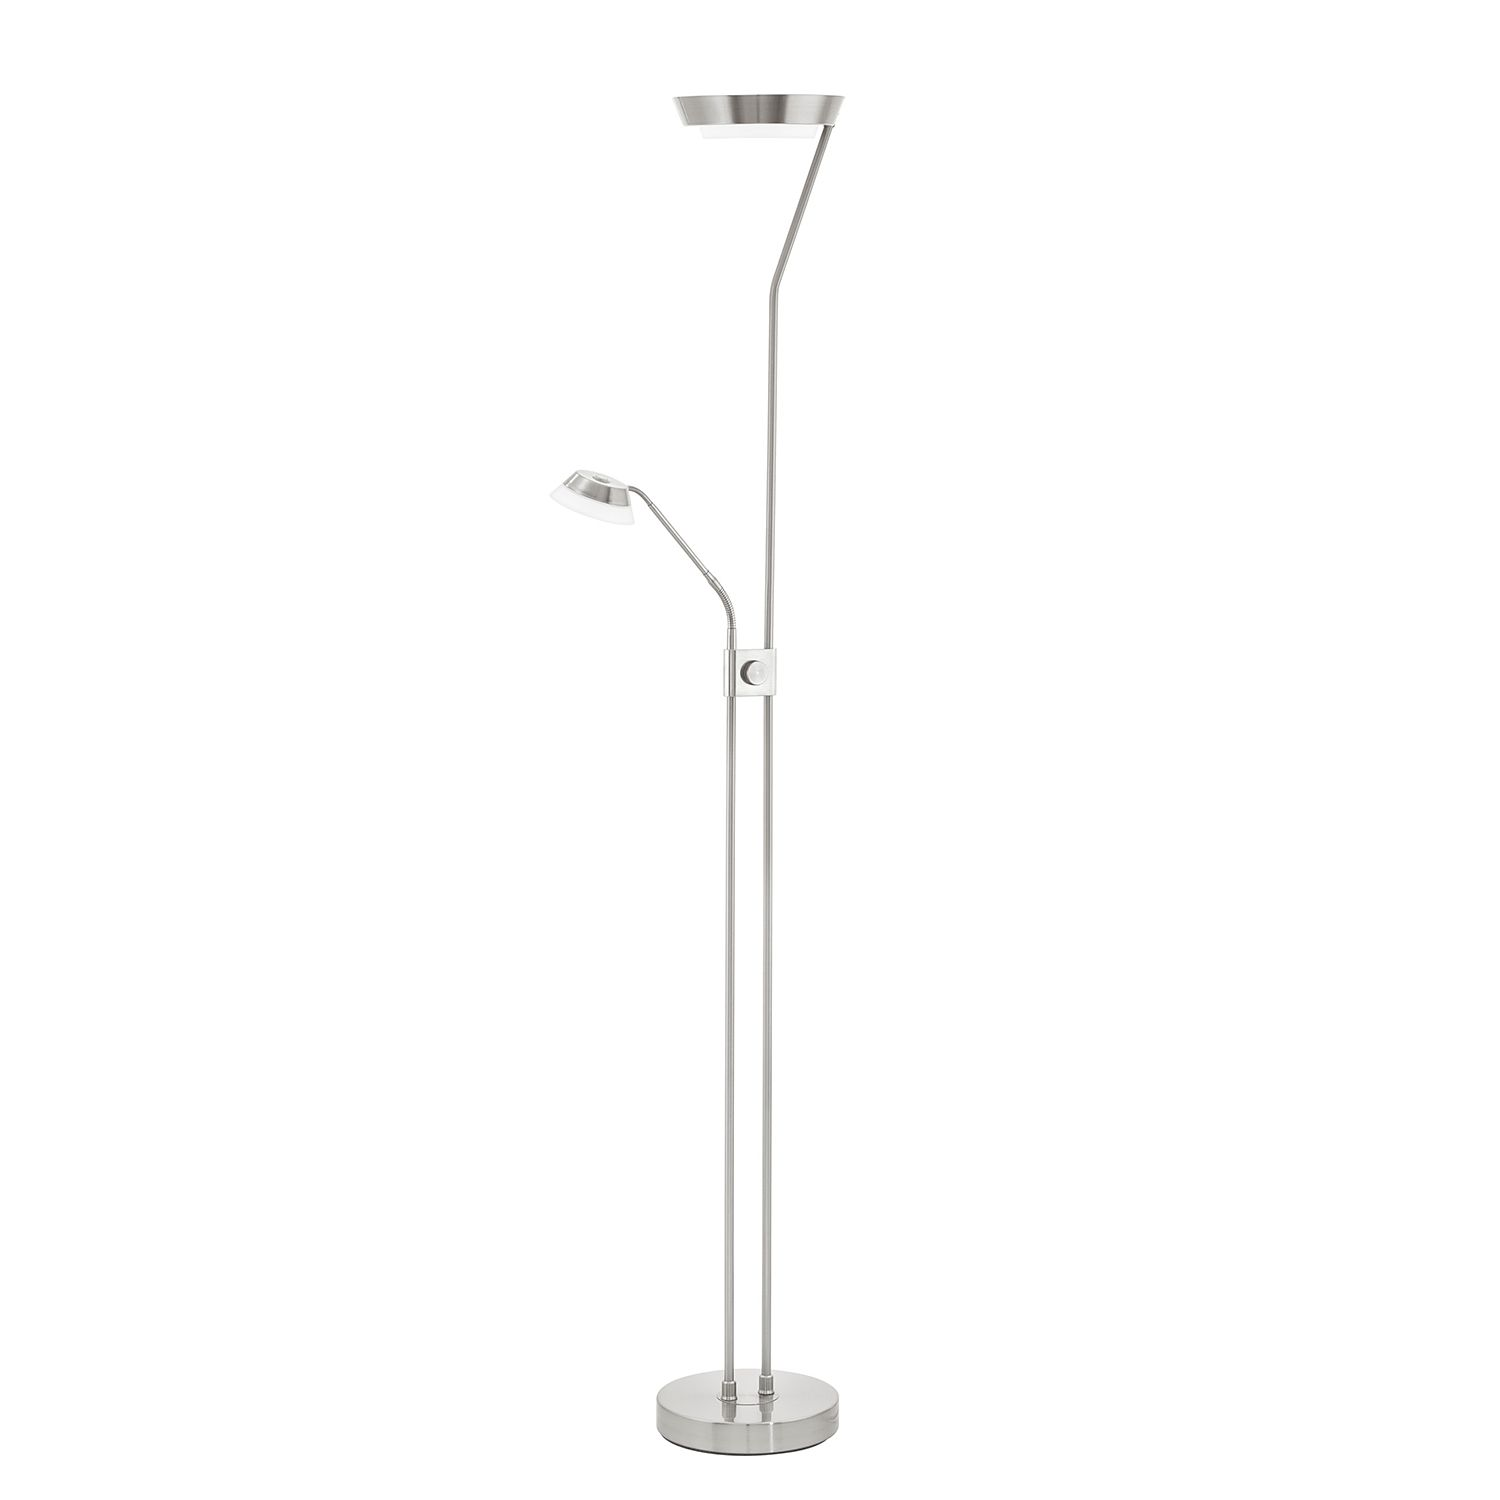 home24 LED-Stehleuchte Sarrione